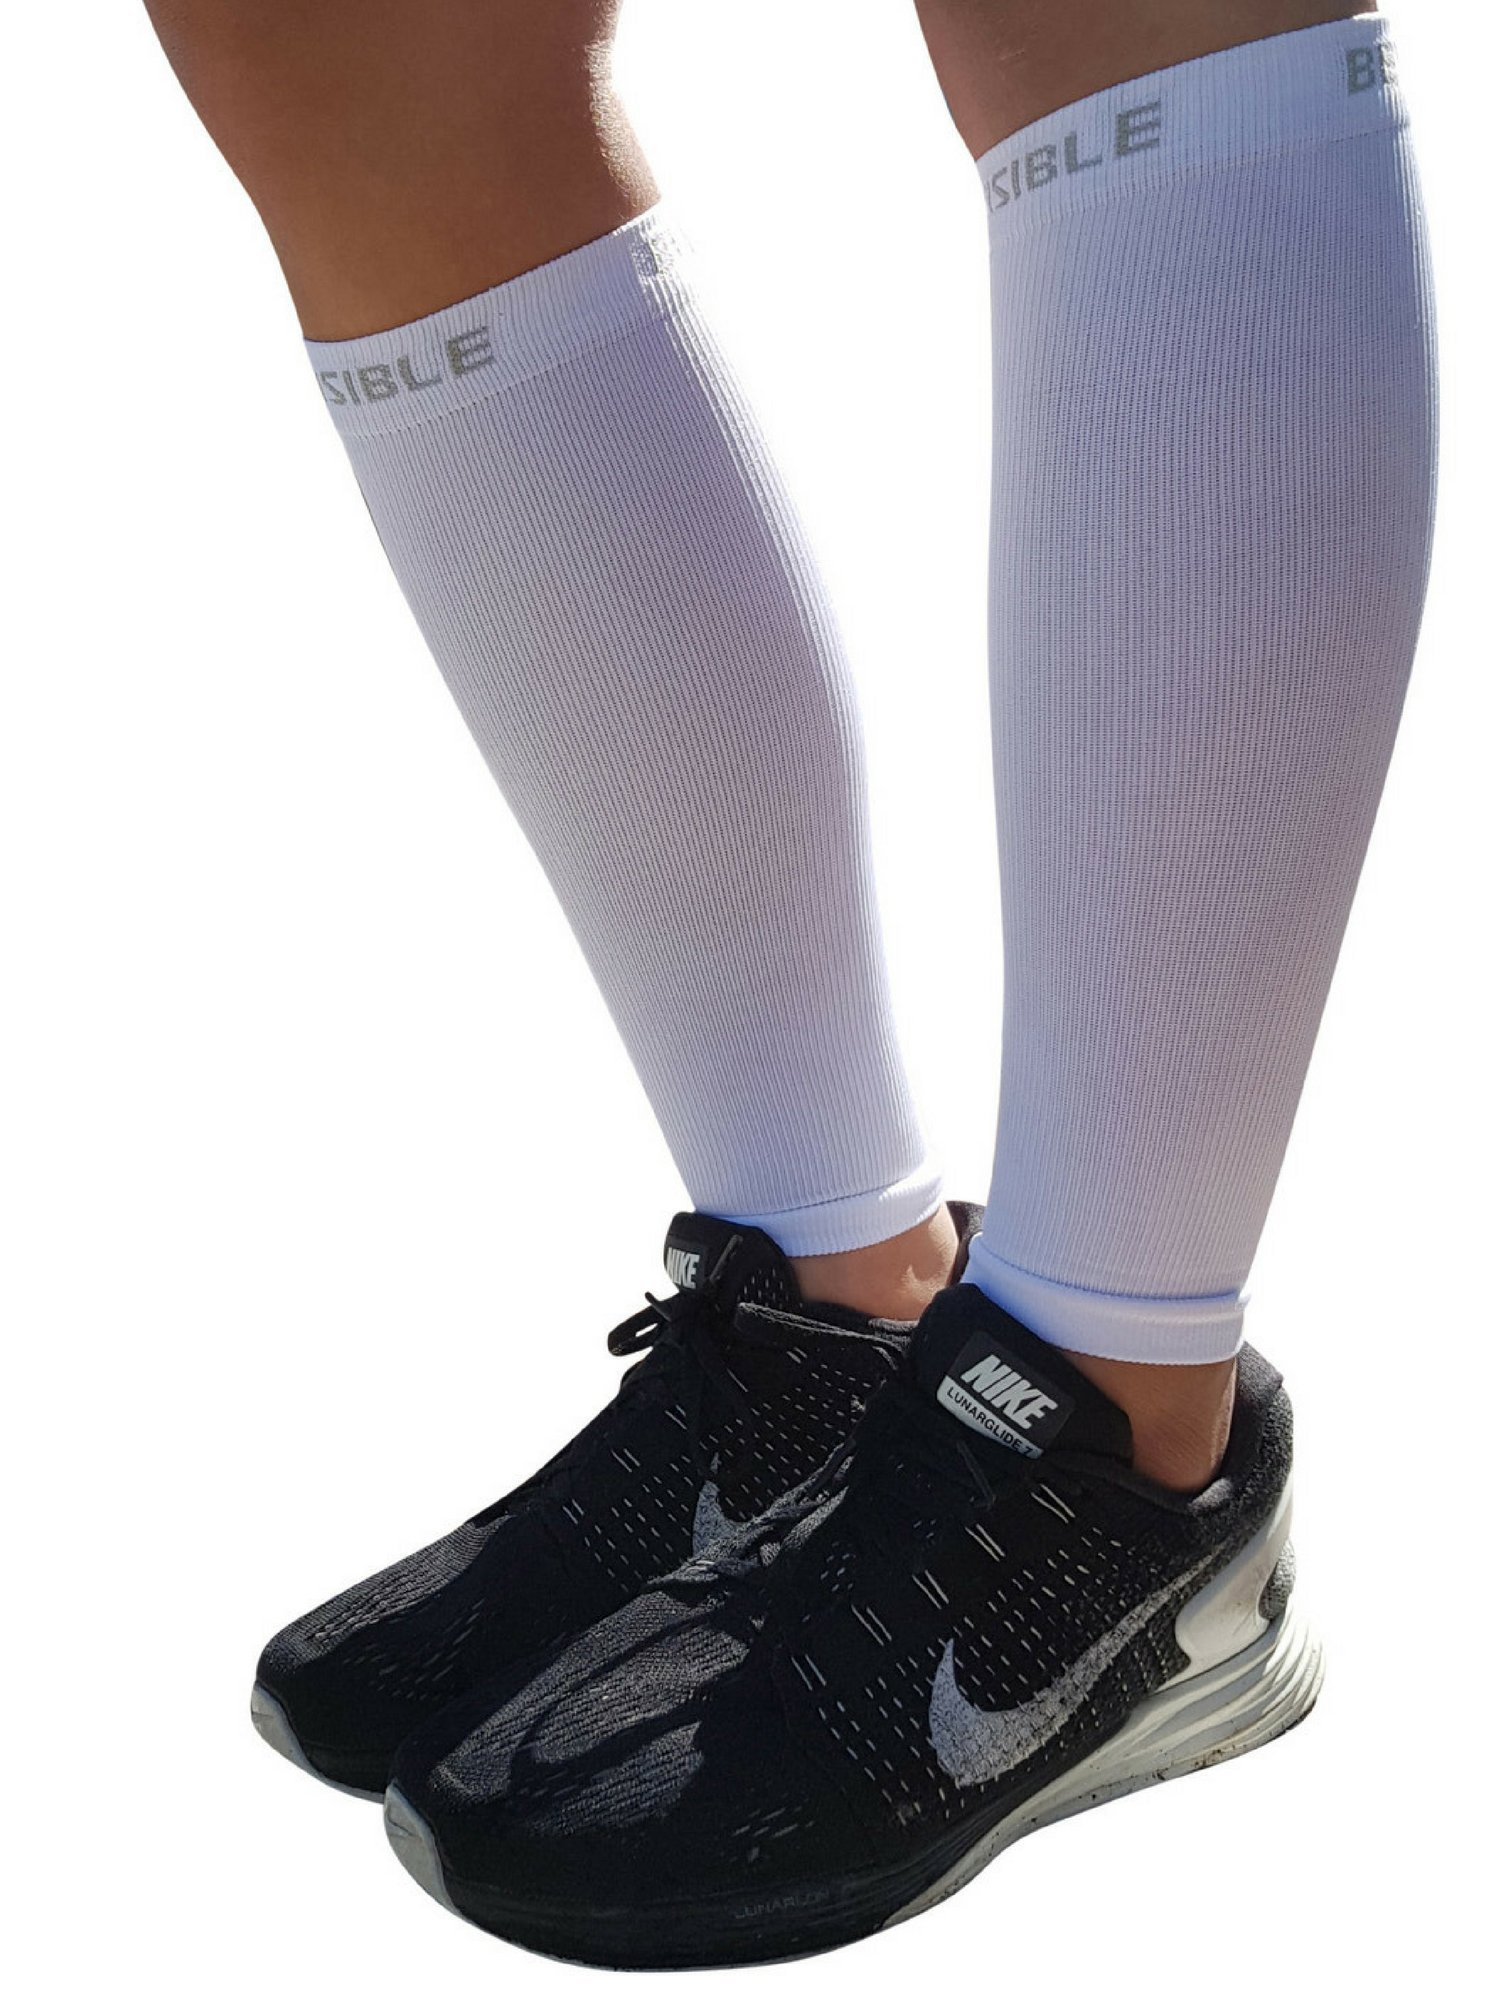 BeVisible Sports Calf Compression Sleeve Shin Splint Leg Compression Socks for Men & Women - Great For Running, Cycling, Air Travel, Support, Circulation & Recovery - 1 Pair (White, XL-XXL)